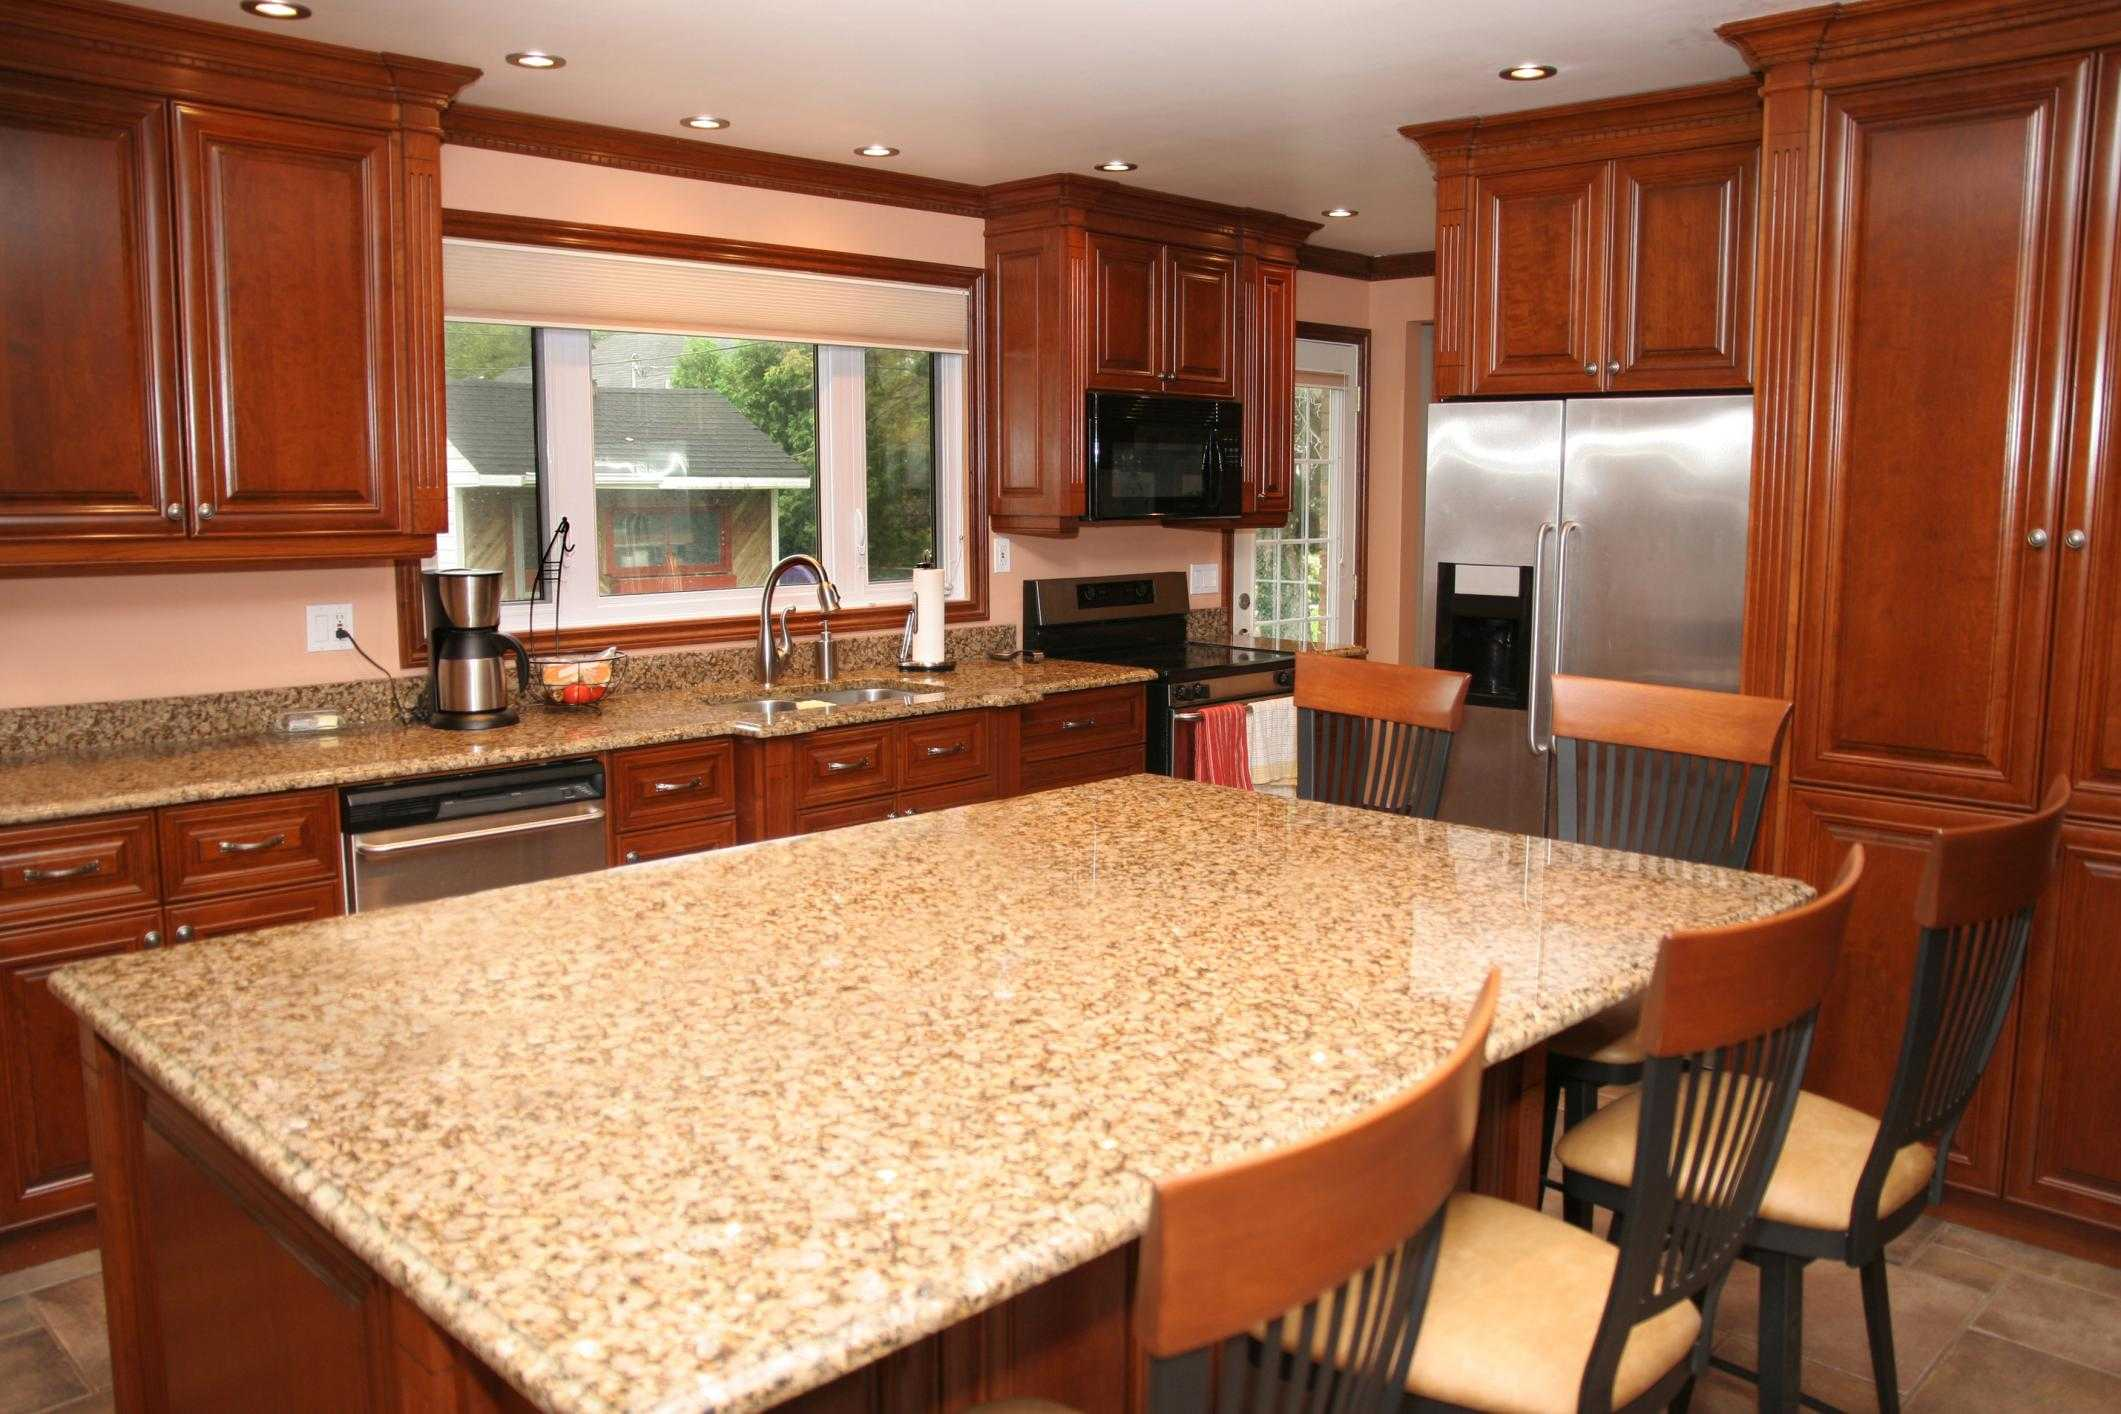 Hamilton Kitchen Renovations - Countertops 1